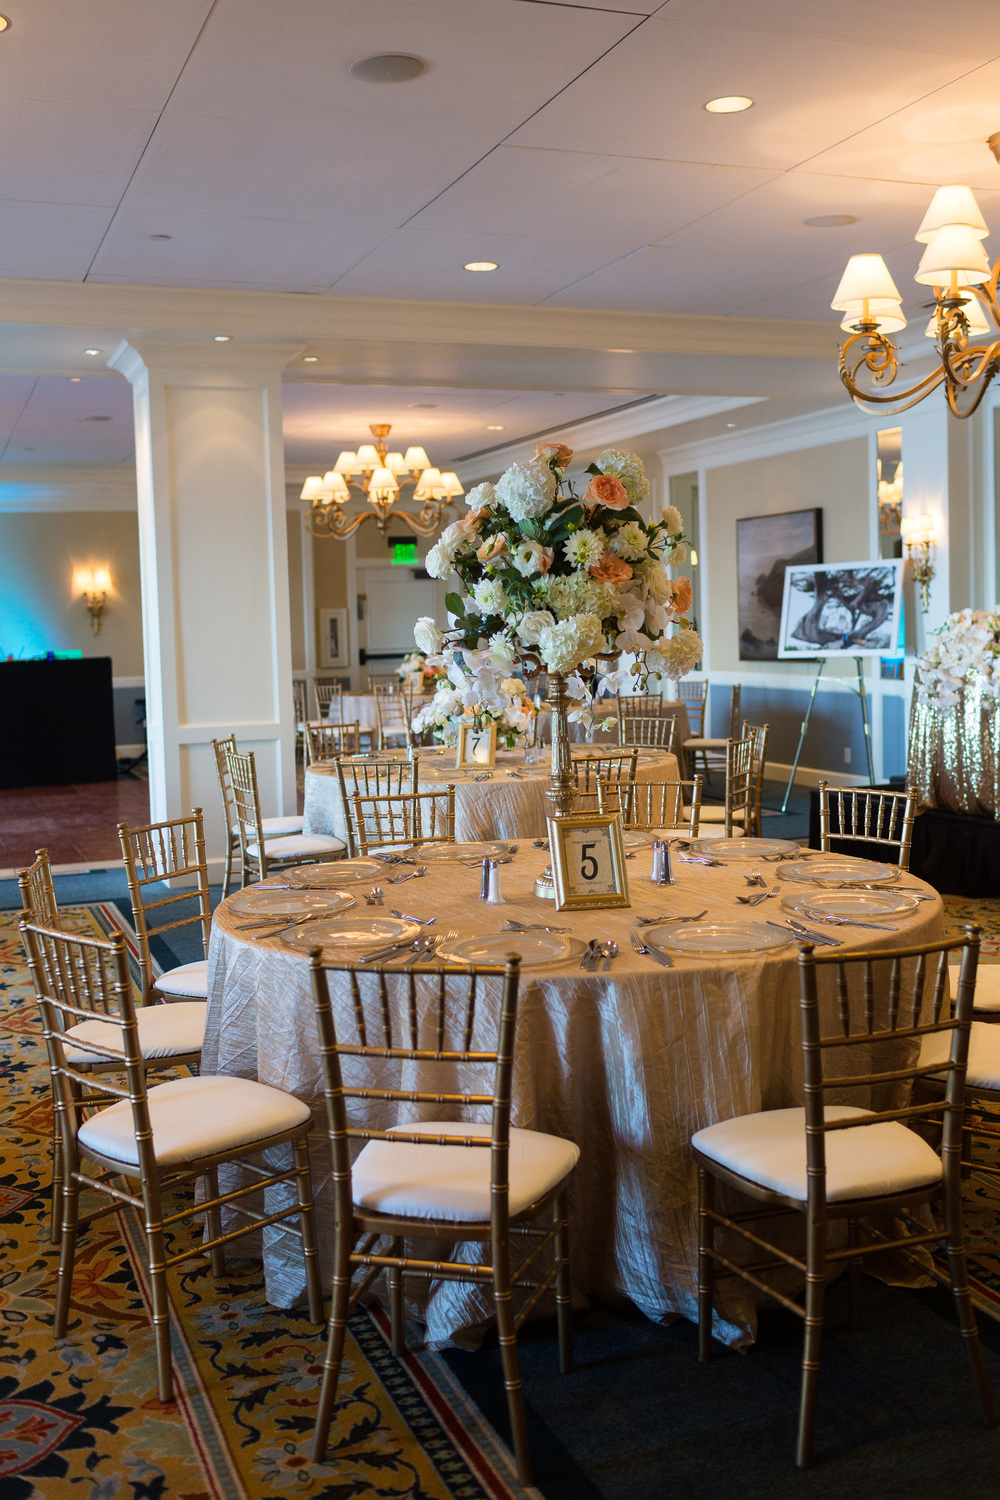 monterey plaza hotel wedding photographer caesar shelby. Black Bedroom Furniture Sets. Home Design Ideas